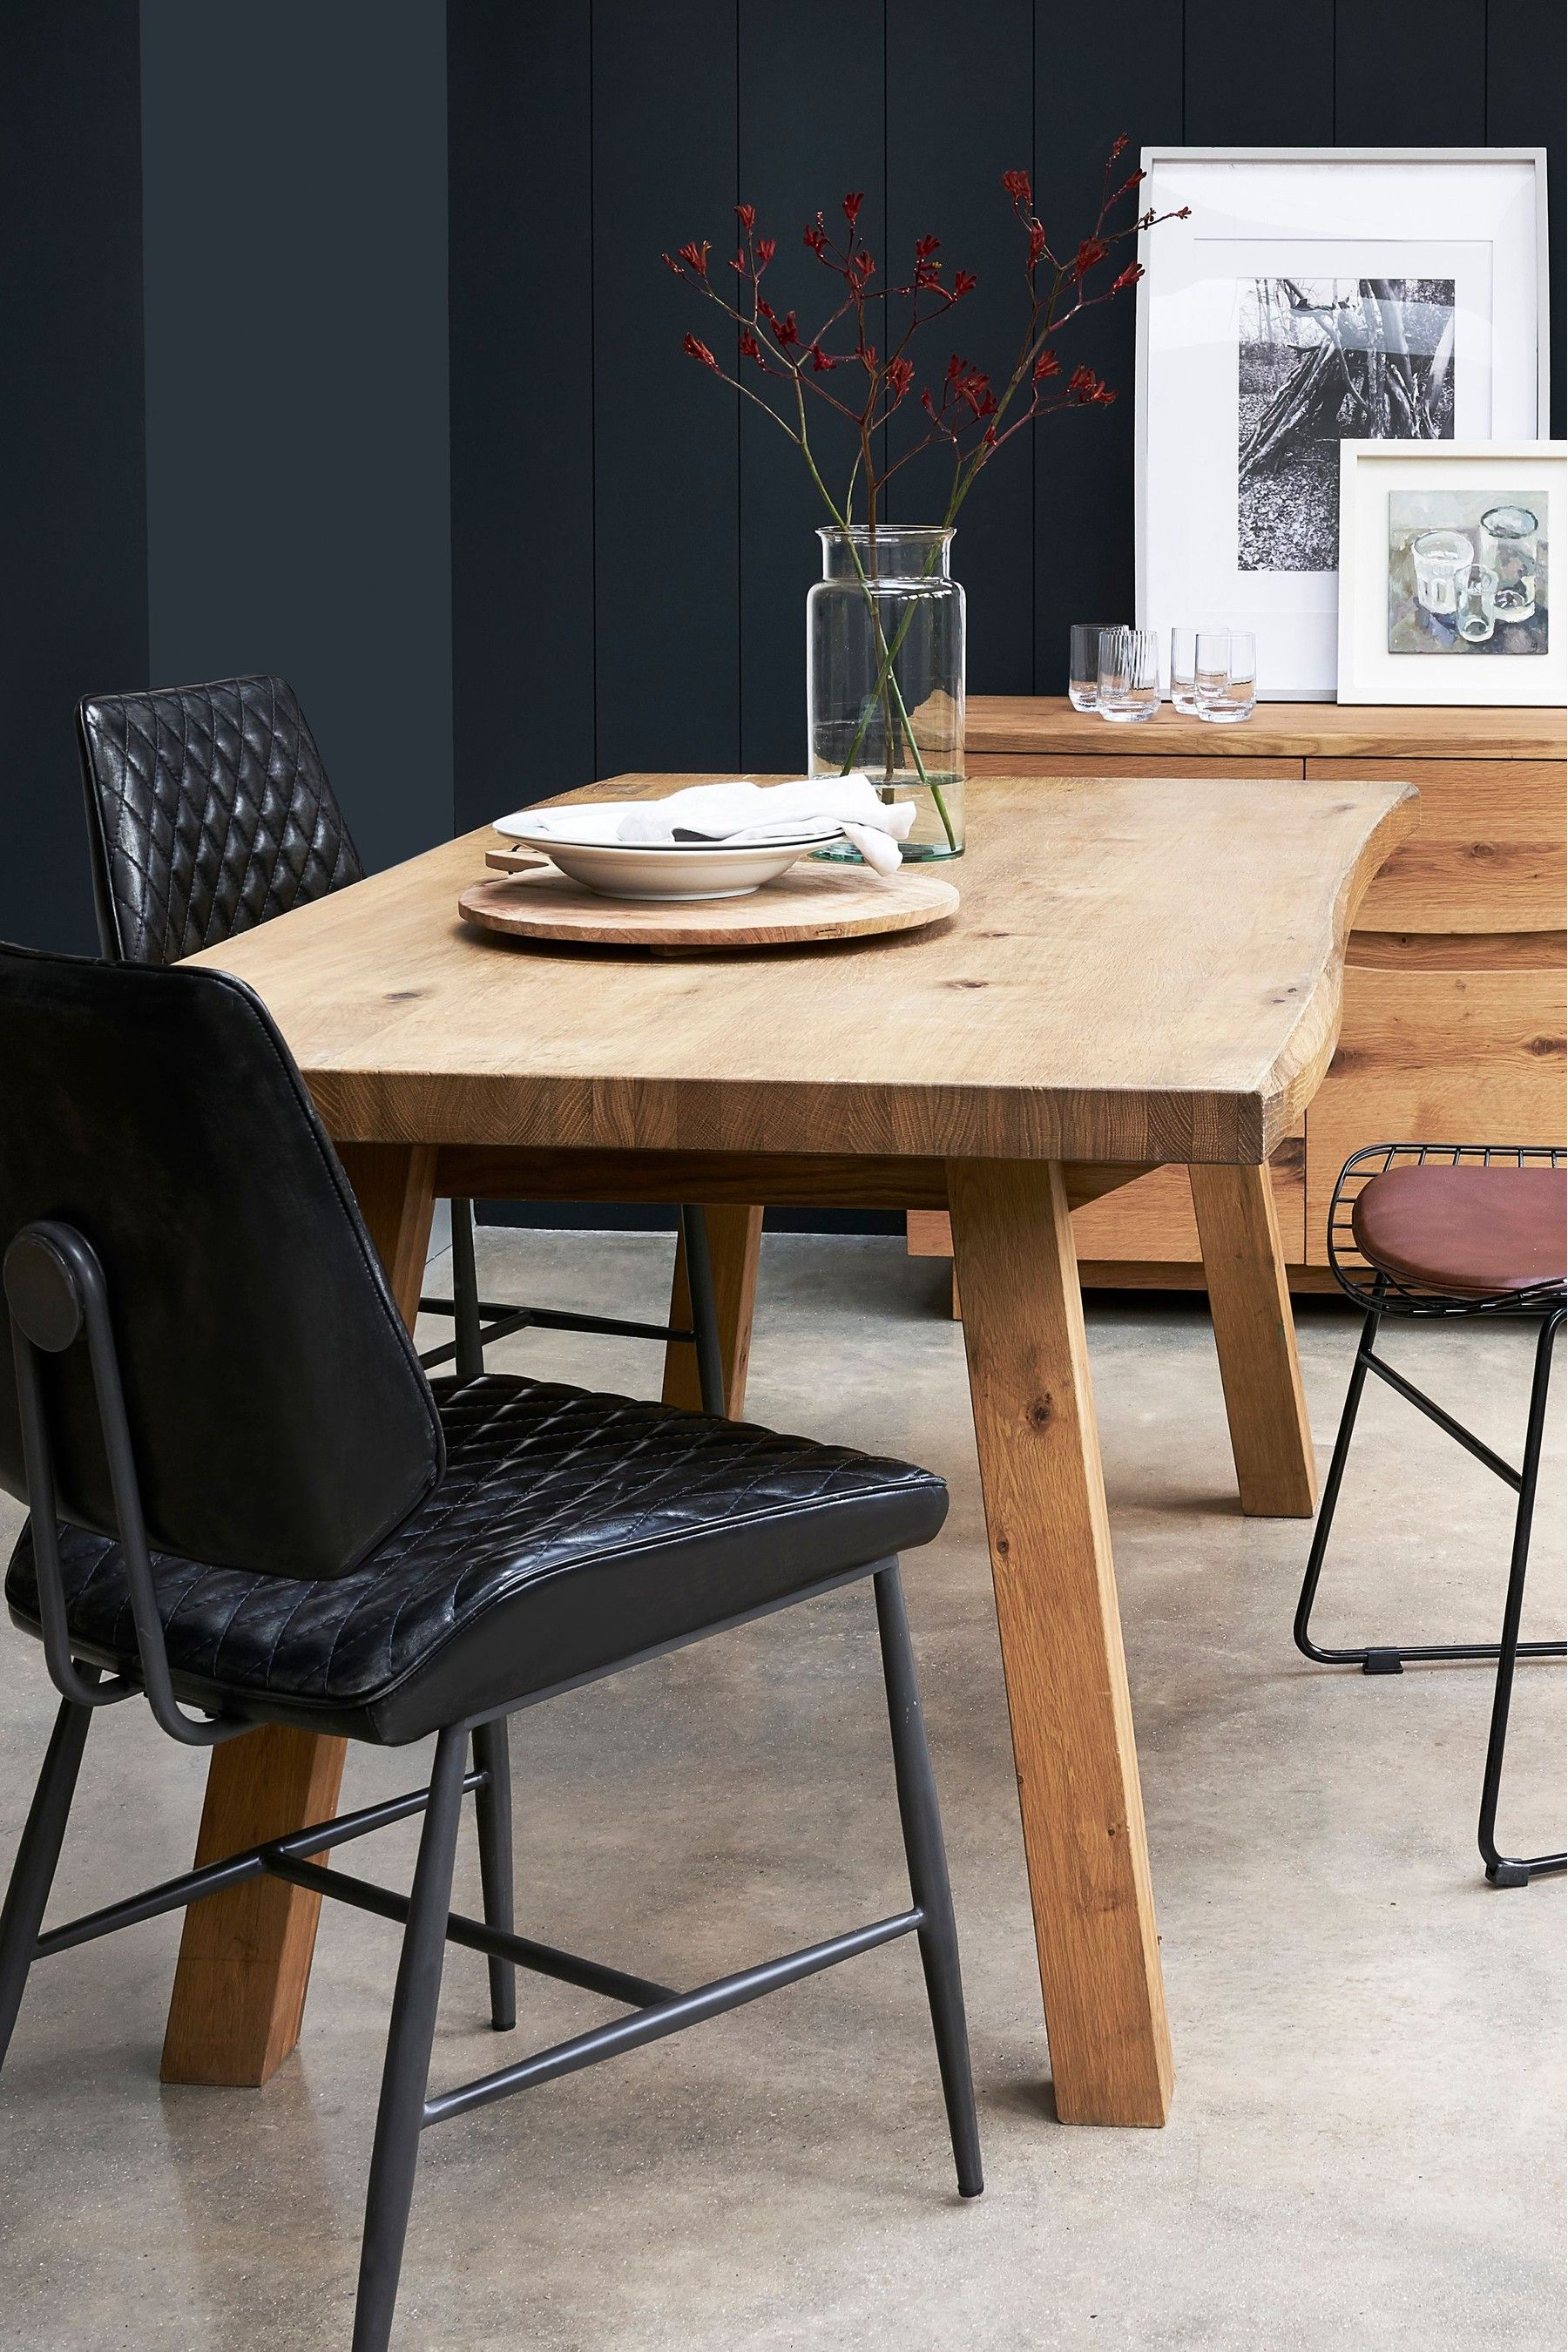 Buy Camden 8 Seater Dining Table From The Next Uk Online Shop 8 Seater Dining Table Dining Room Decor Modern Dining Table